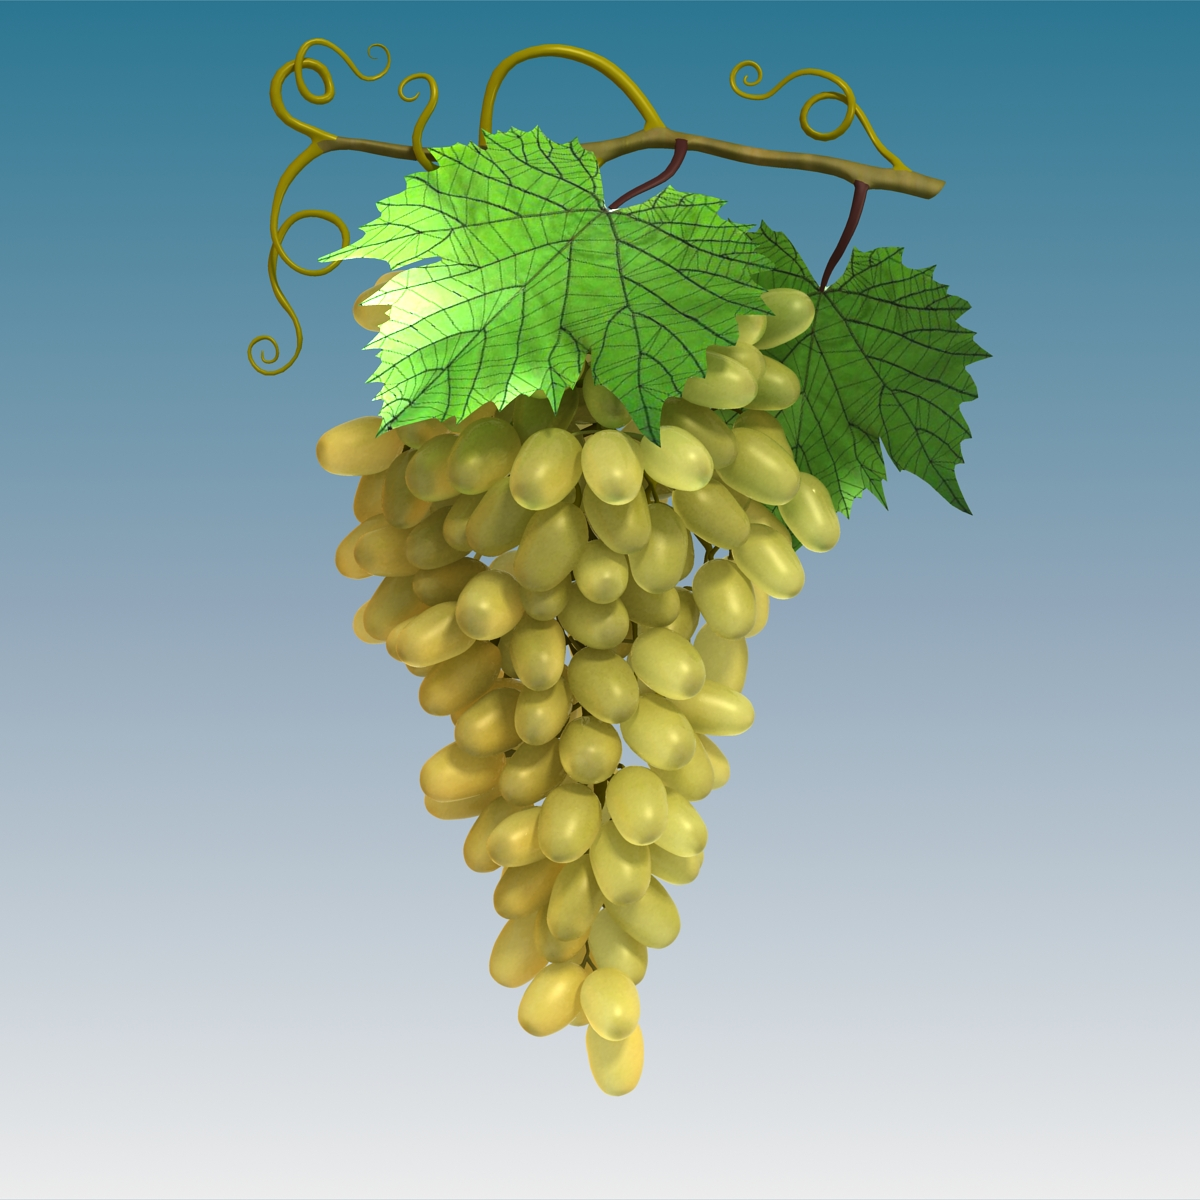 grapes cluster green 3d model 3ds max fbx c4d lwo obj 204230